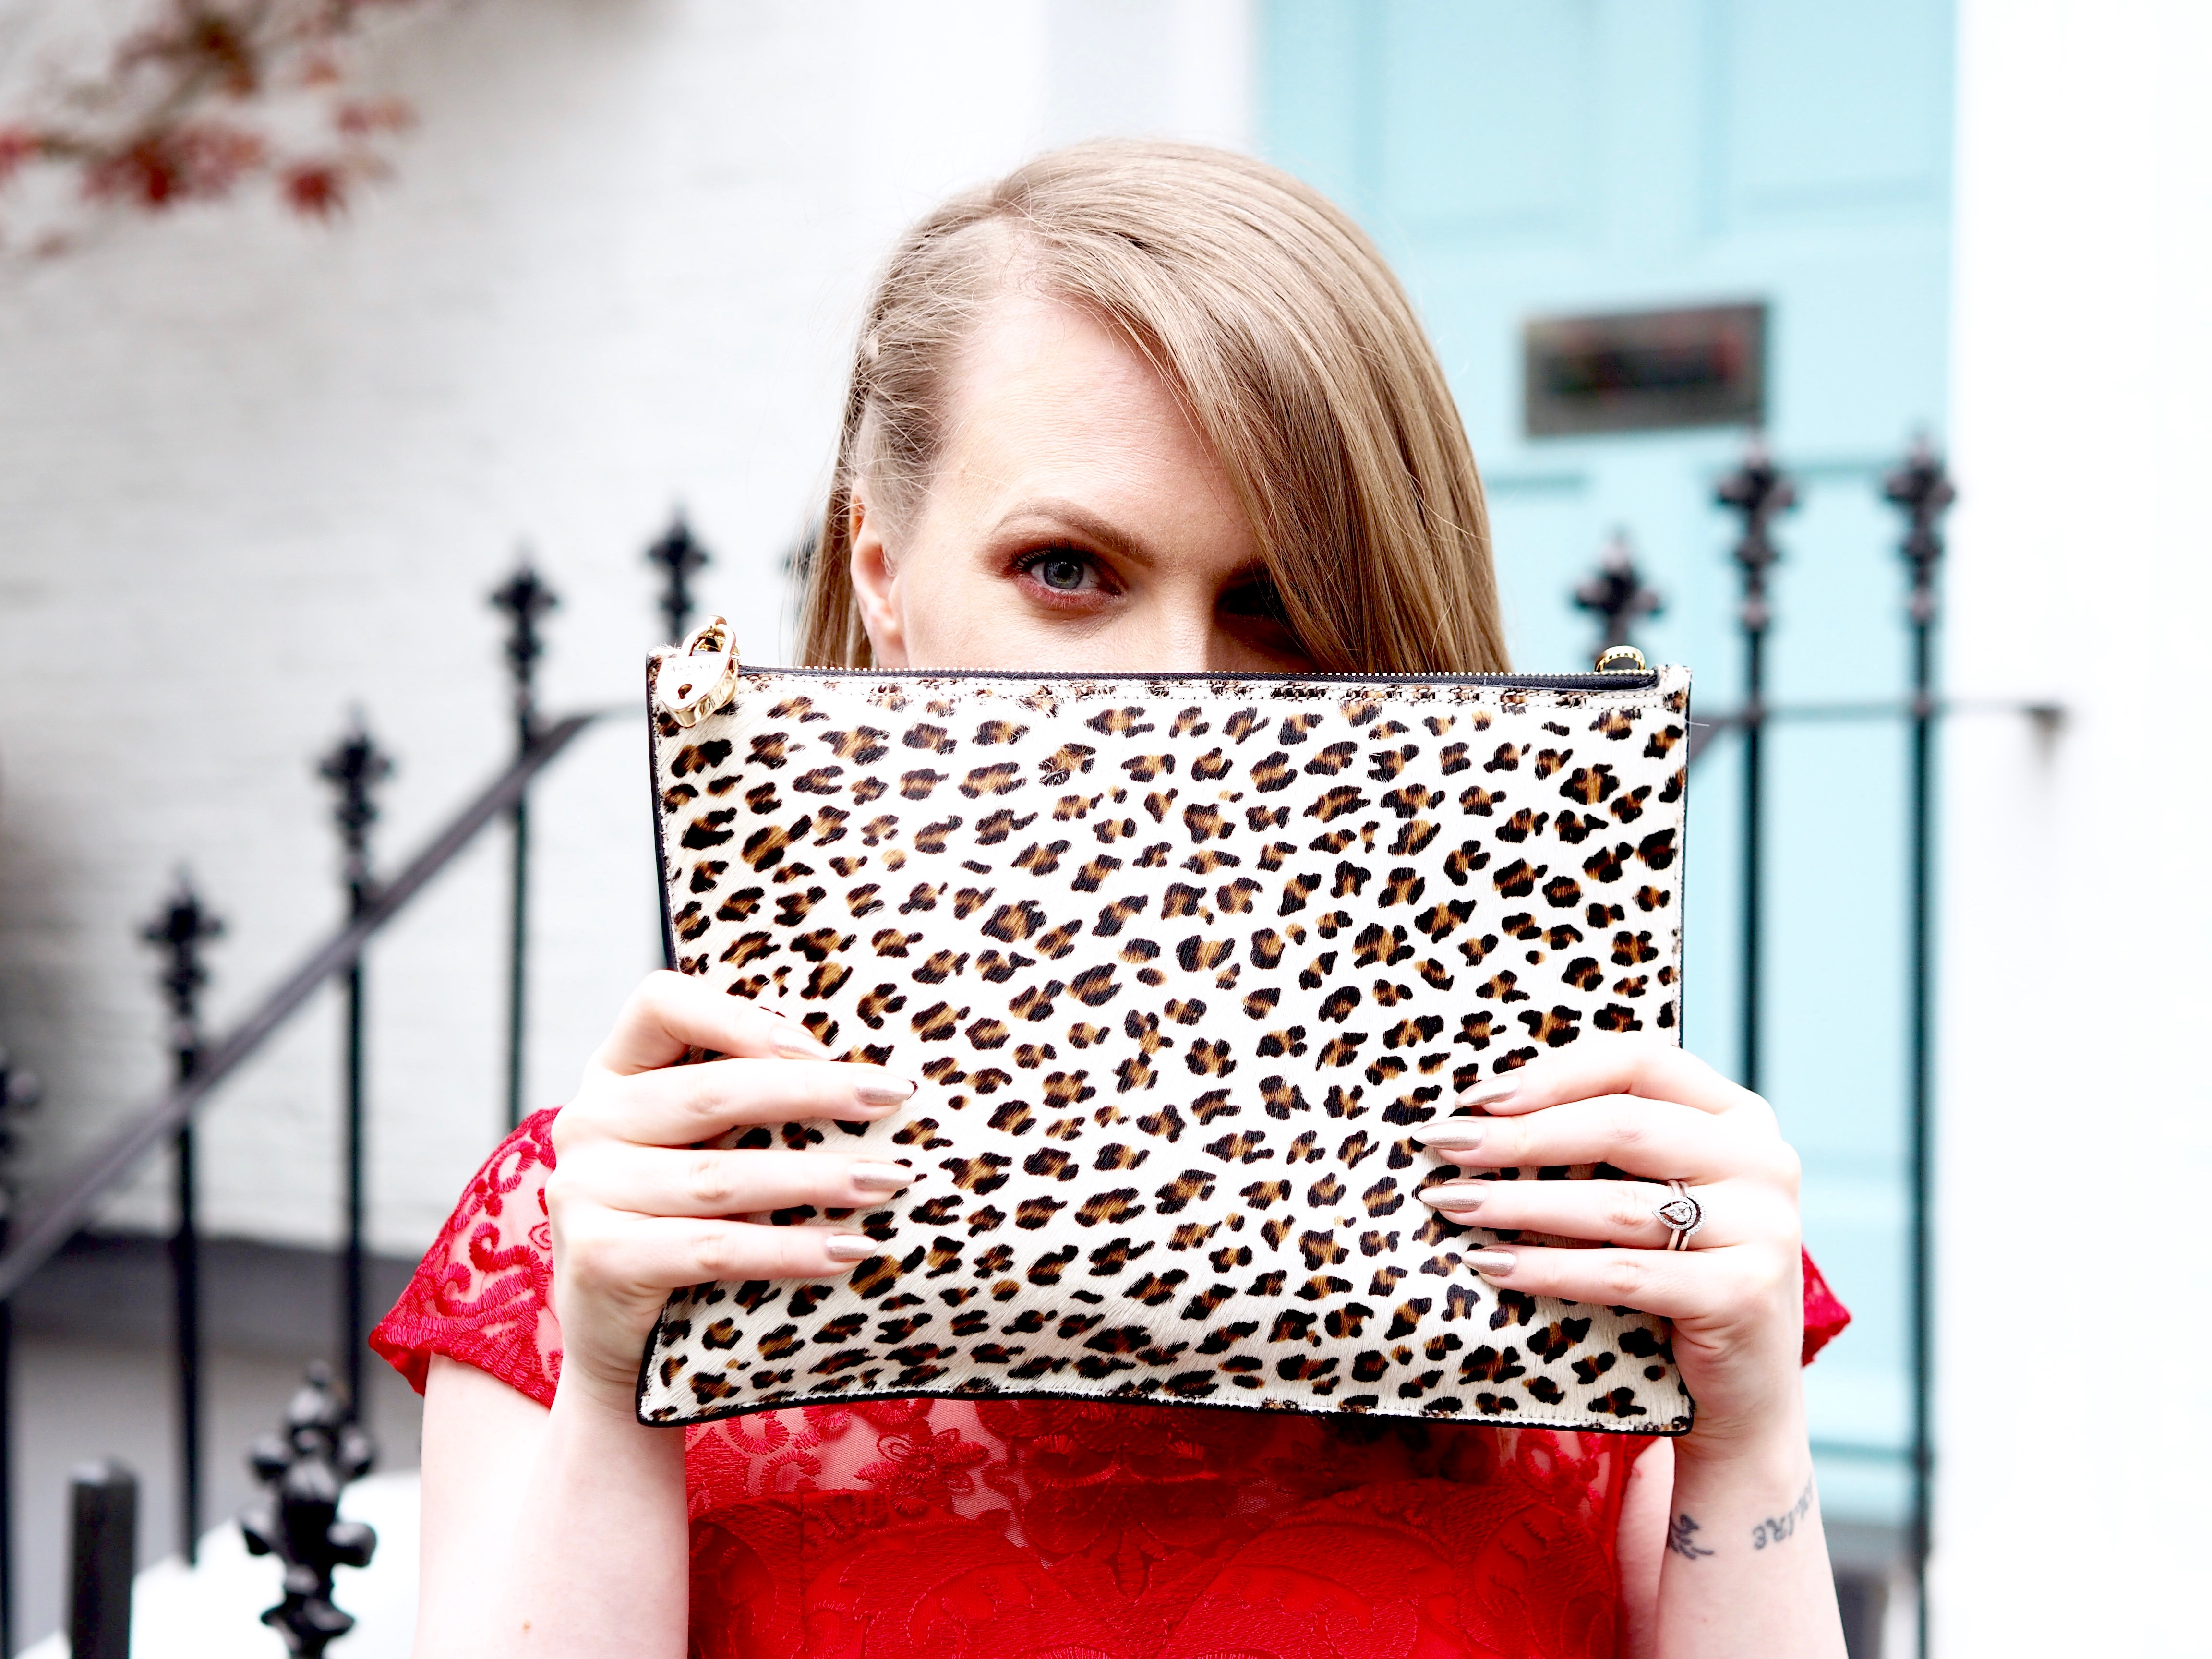 What I wore to the Blogosphere Blog Awards: red ChiChi dress, leopard print Aspinal clutch, ChiChi Bow shoes